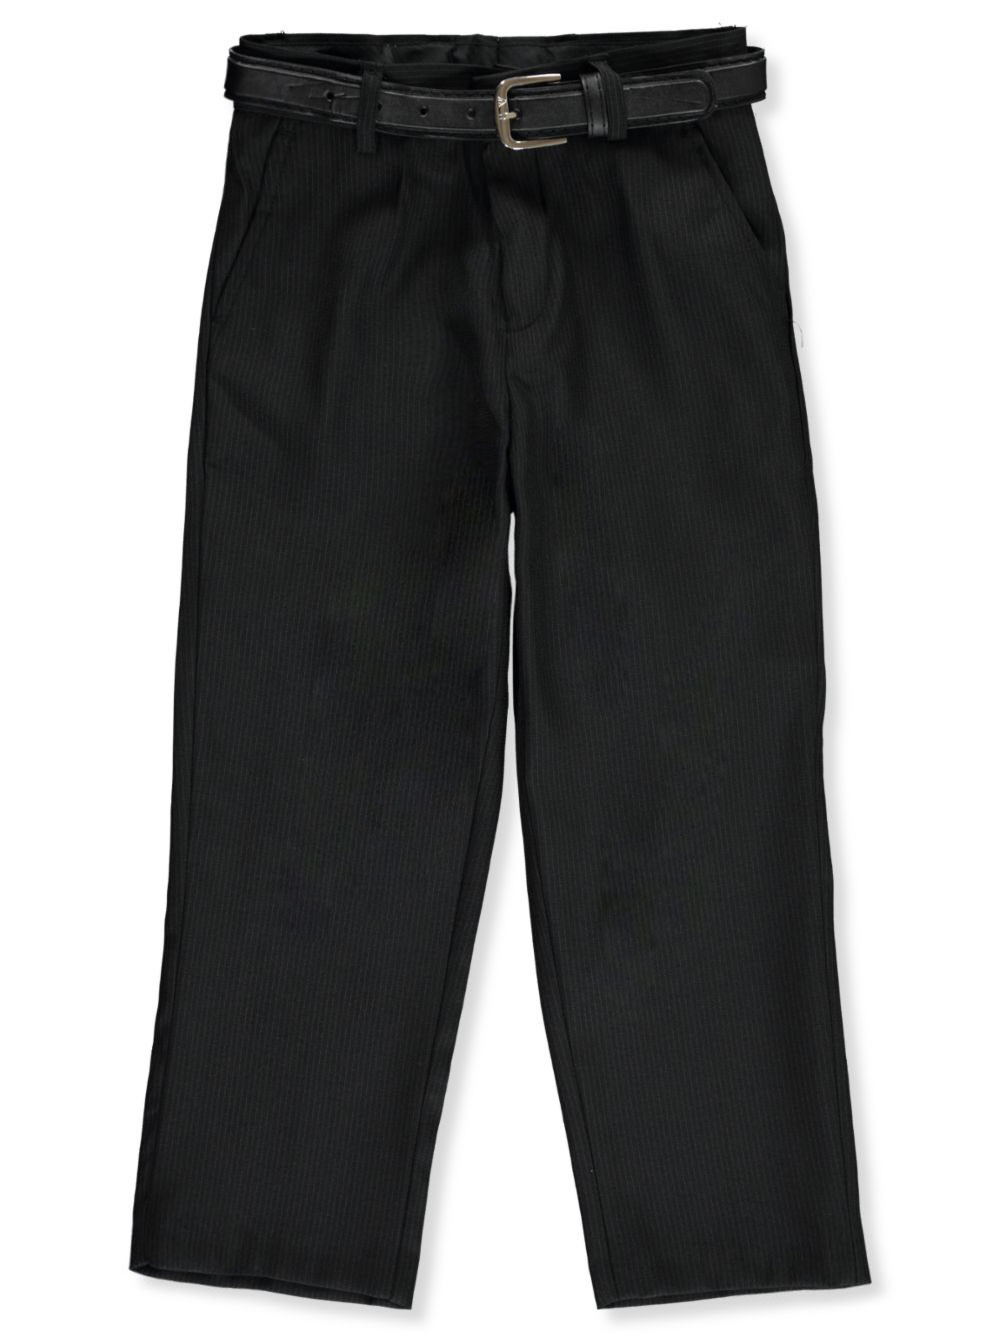 Boys Dark Blue Pants